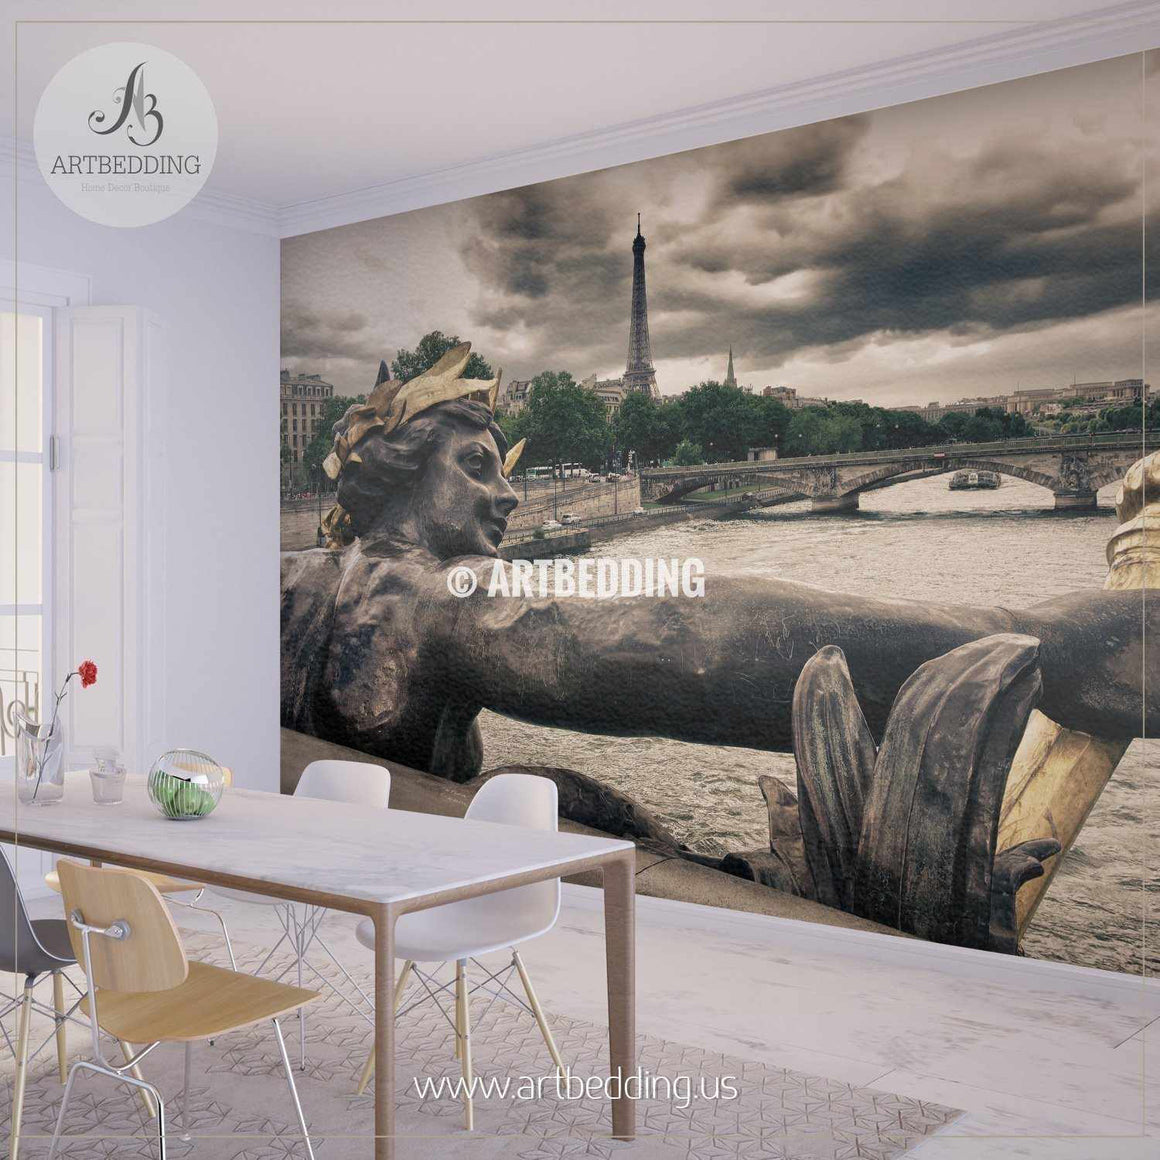 Seine River and Eiffel Tower viewed from Alexander III bridge Wall Mural, Photo Mural, wall décor wall mural